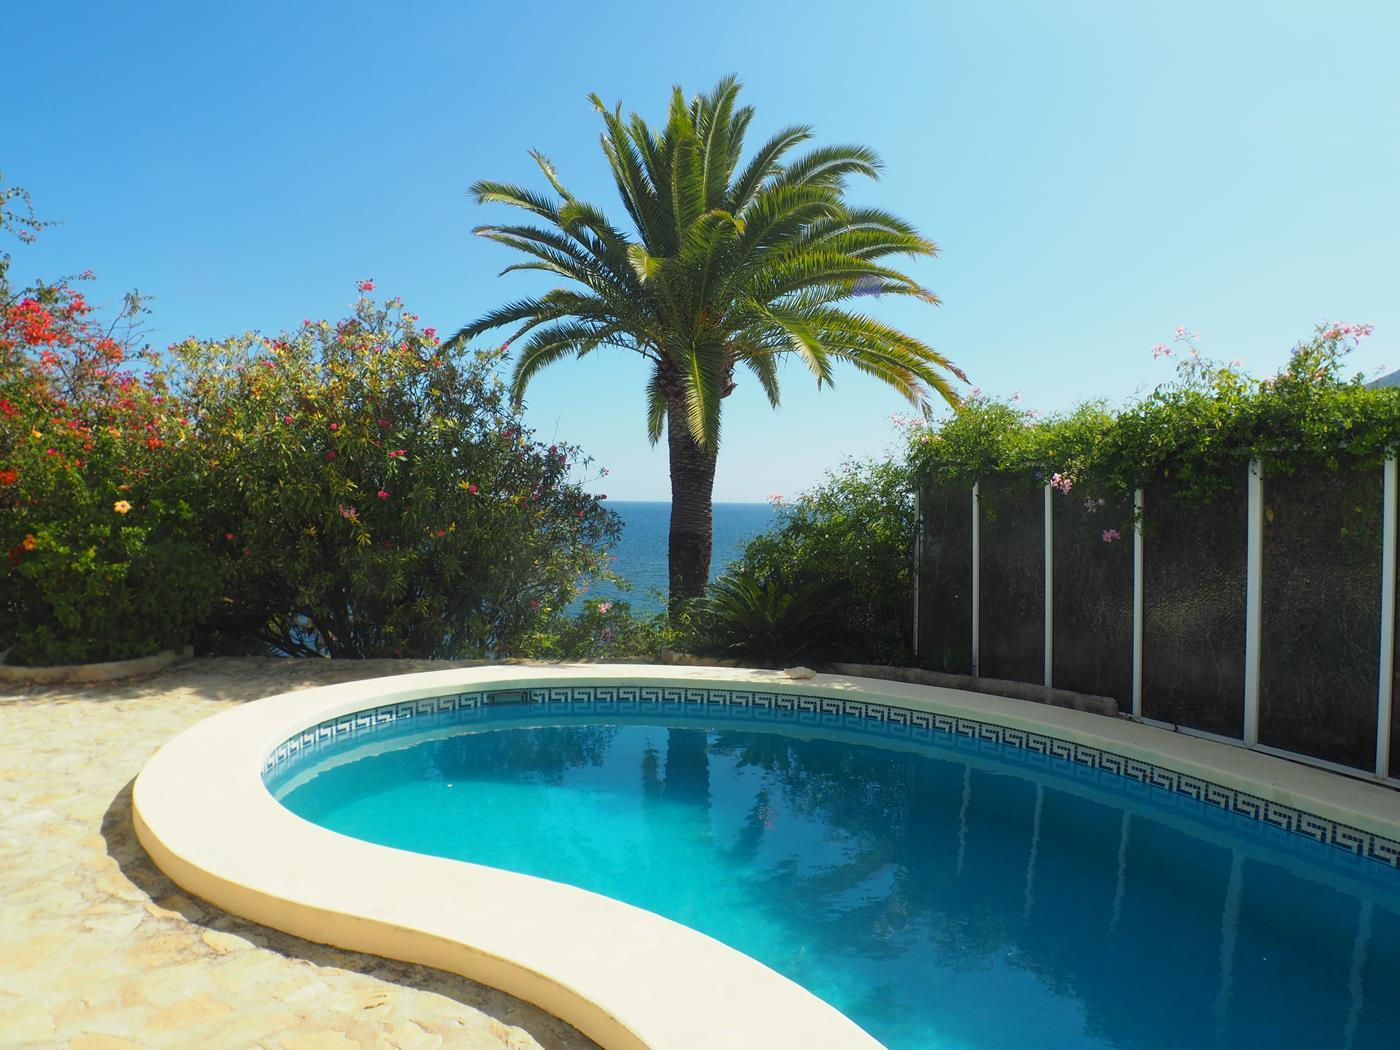 Photogallery - 4 - Exceptional homes in the Costa Blanca. Unparalleled Service. Exceptional properties in the Costa Blanca